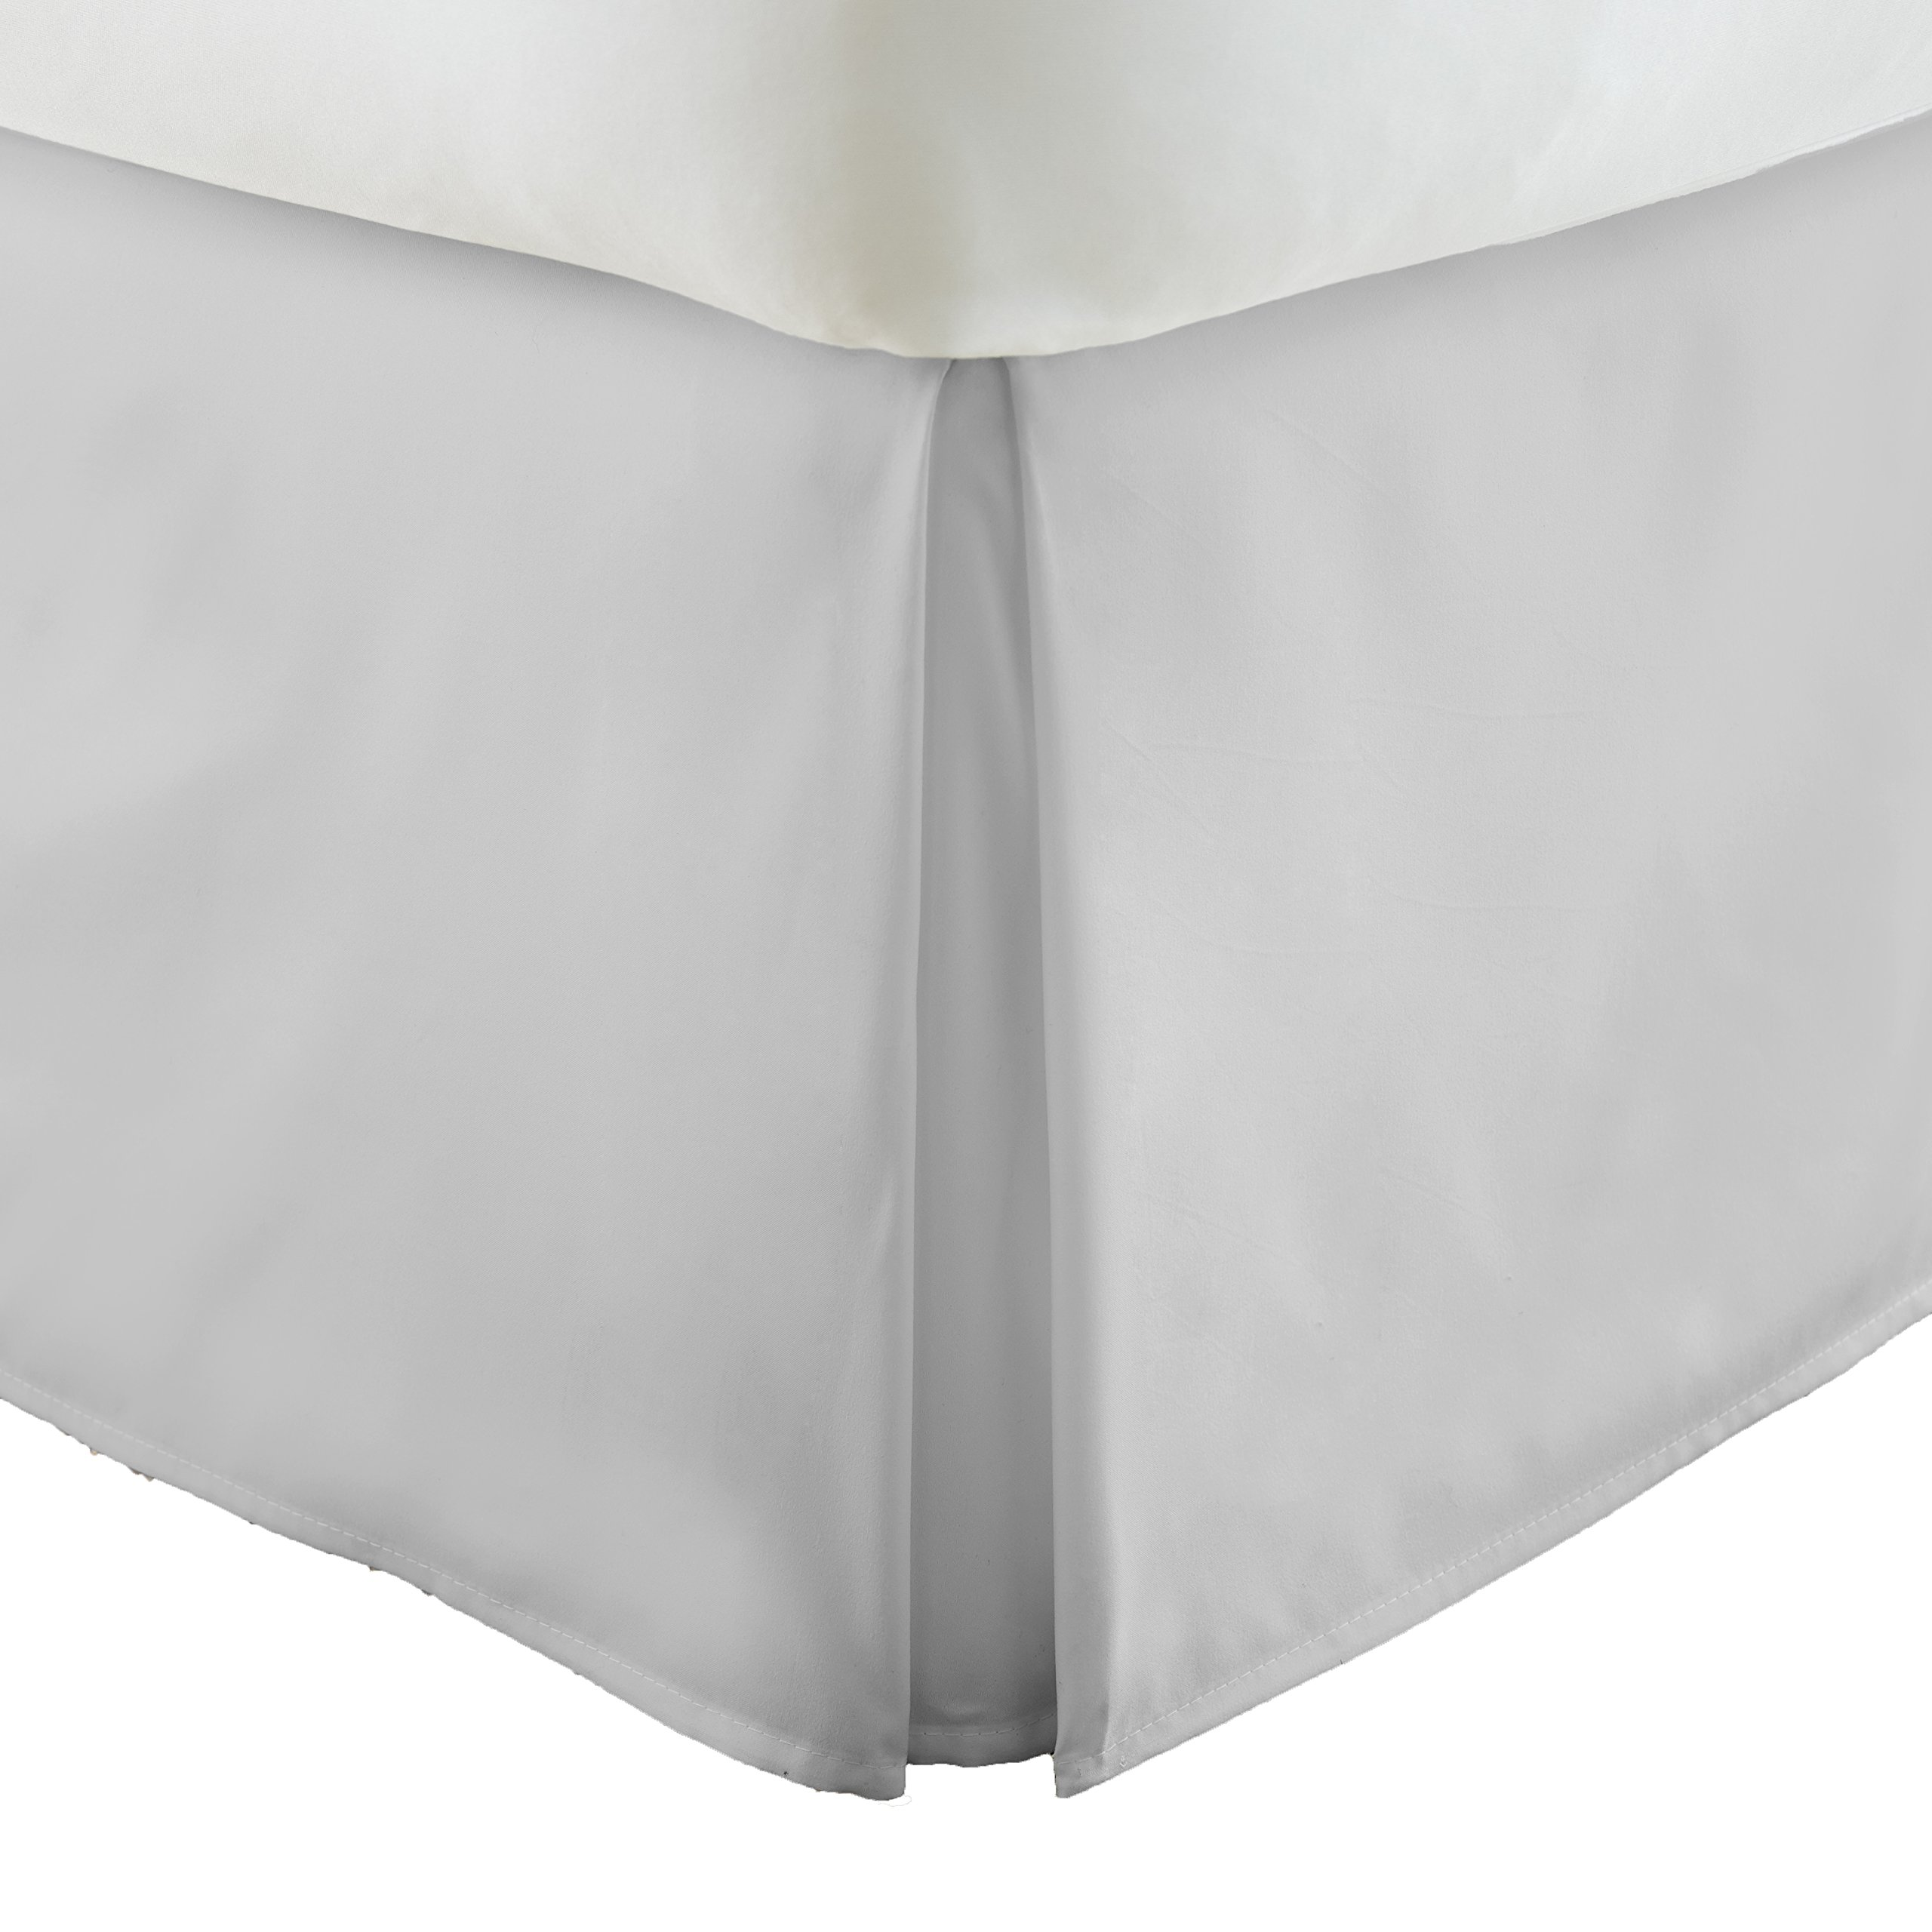 ienjoy Home Ieh-Bedskirt Pleated Bed Skirt, KING, Lgray by ienjoy Home